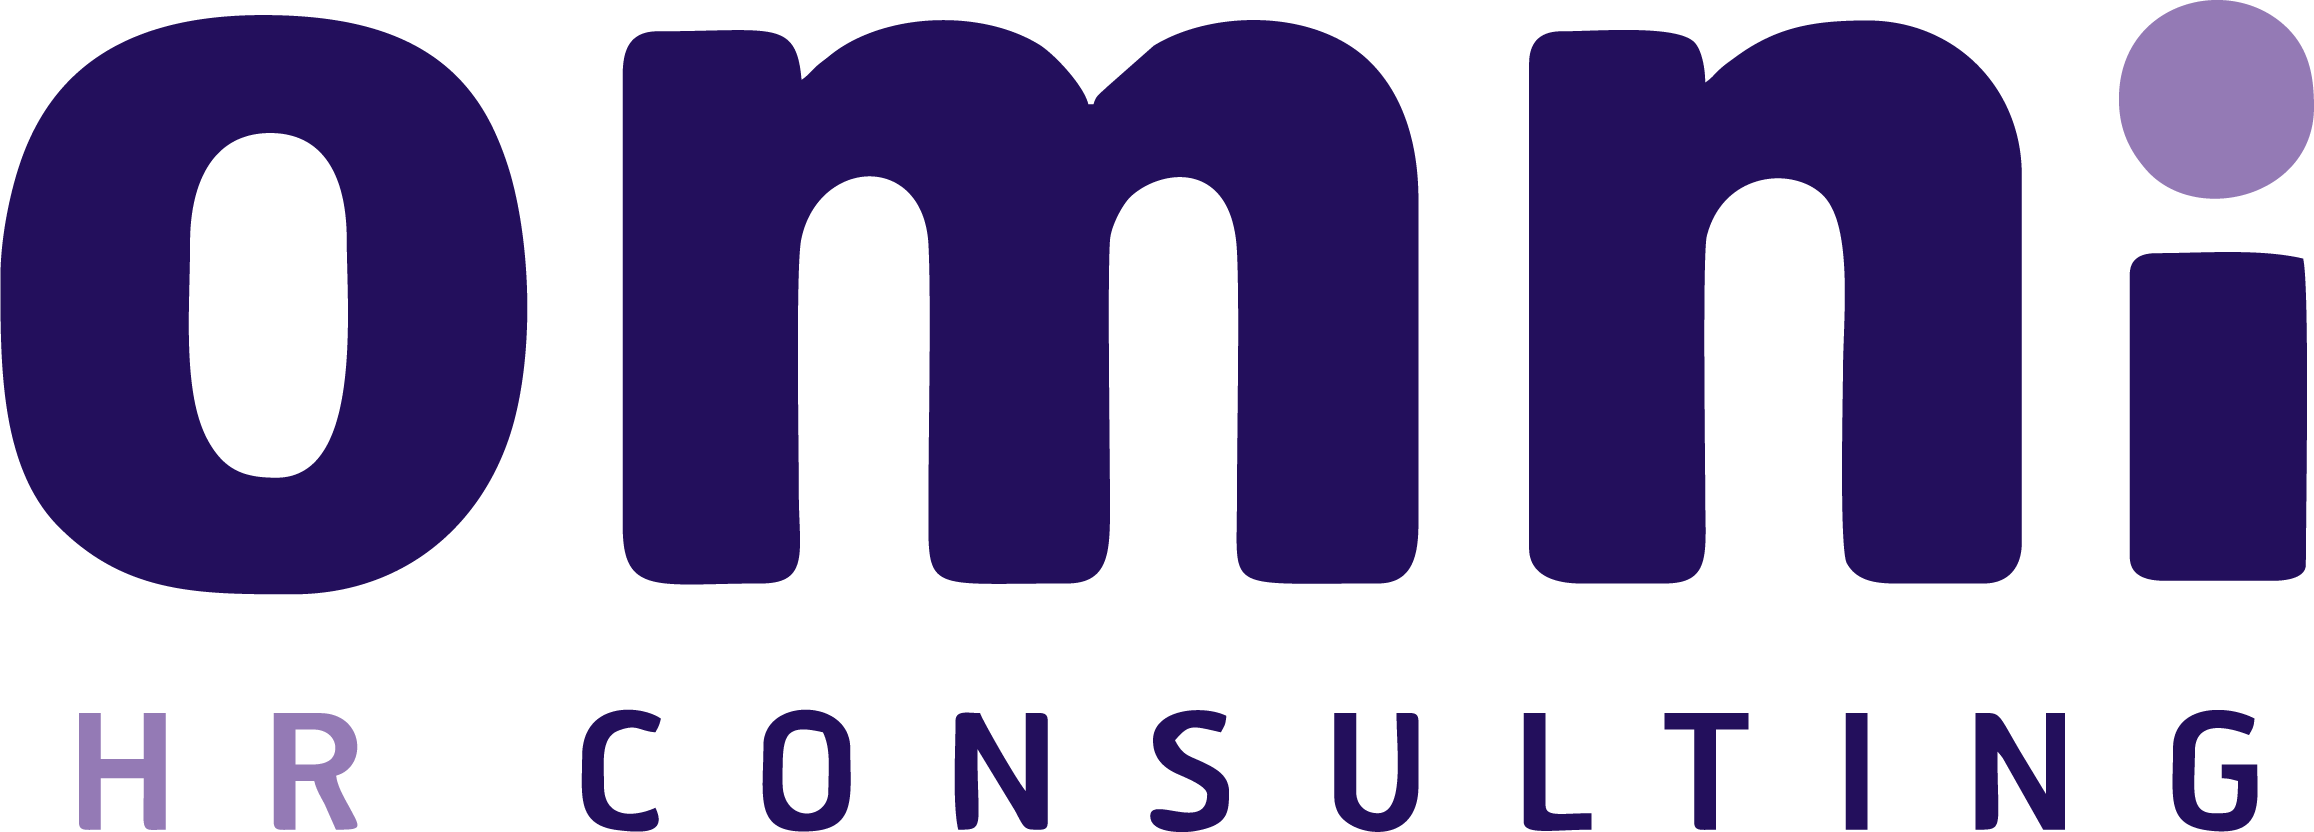 Omni HR Consulting Logo (no background).png